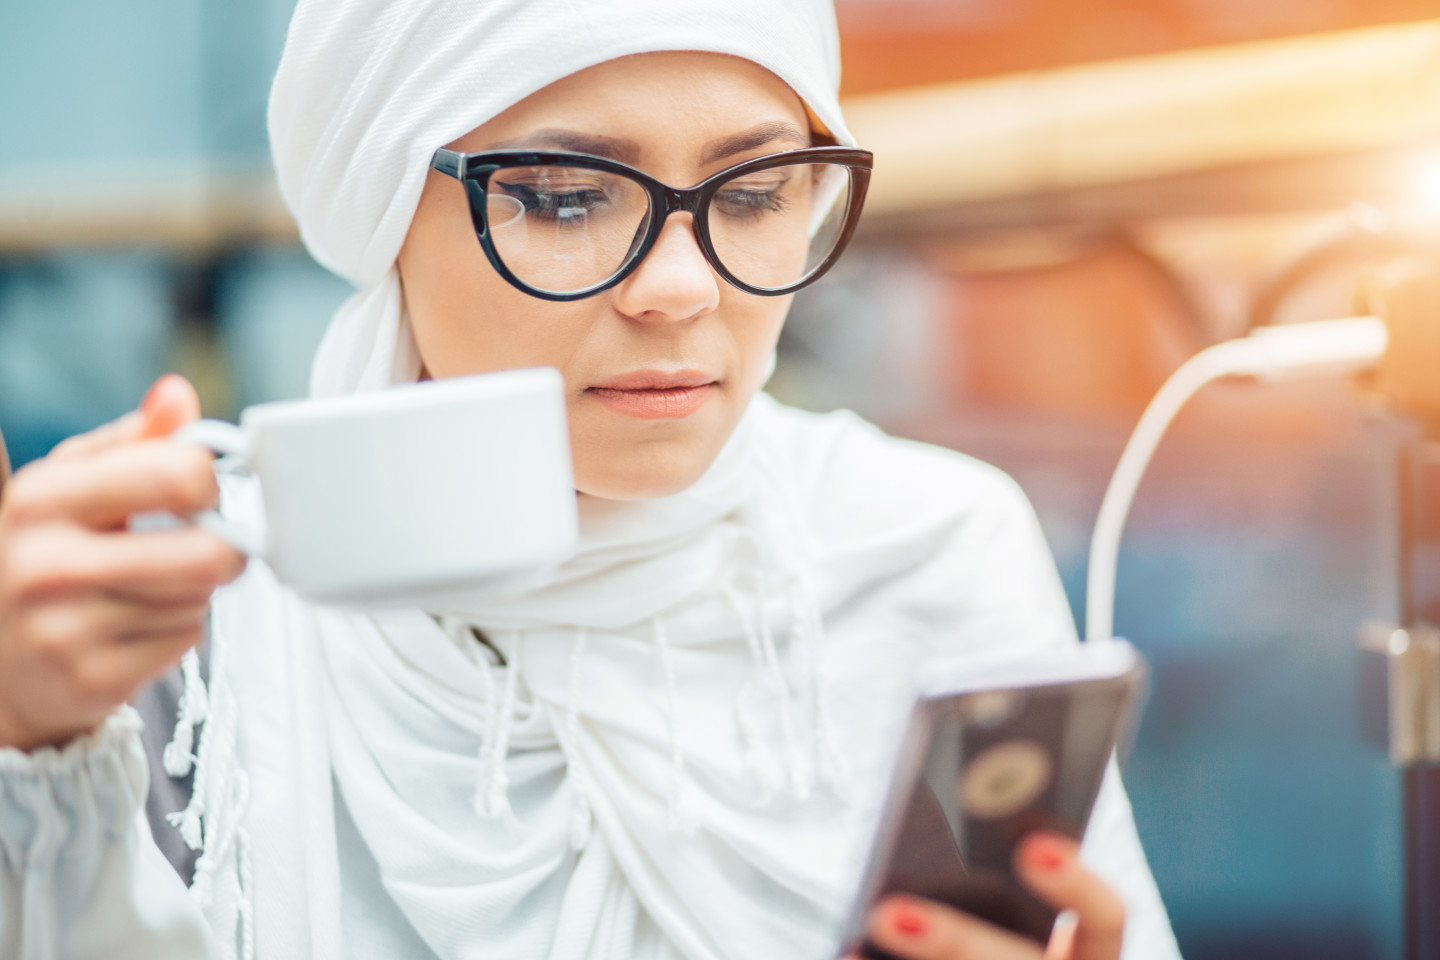 woman-looking-at-her-phone-coffee